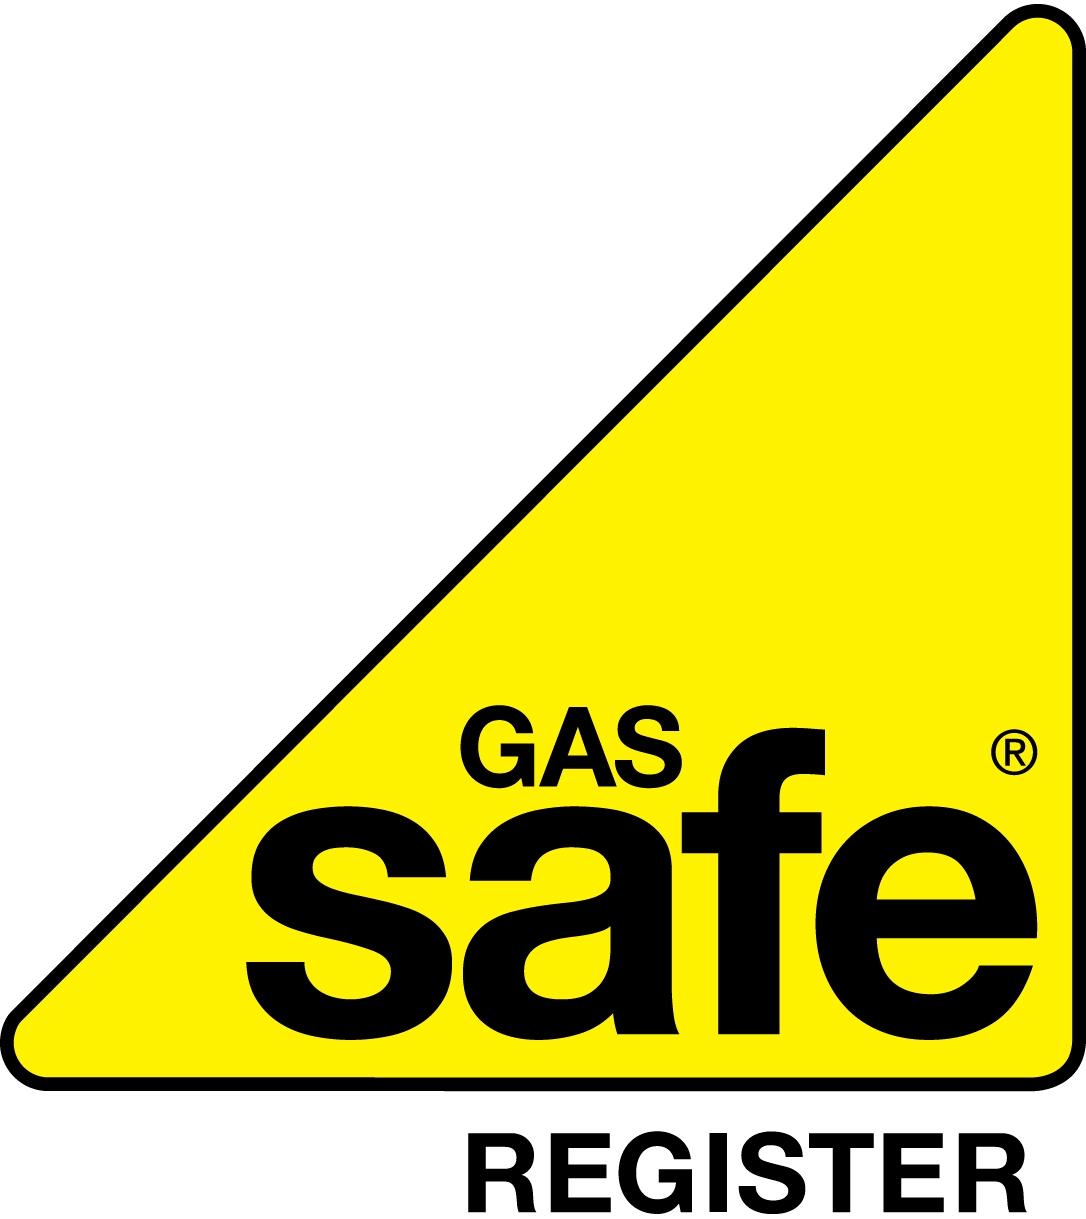 Pensioner plumber prosecuted for illegal gas work - Latest